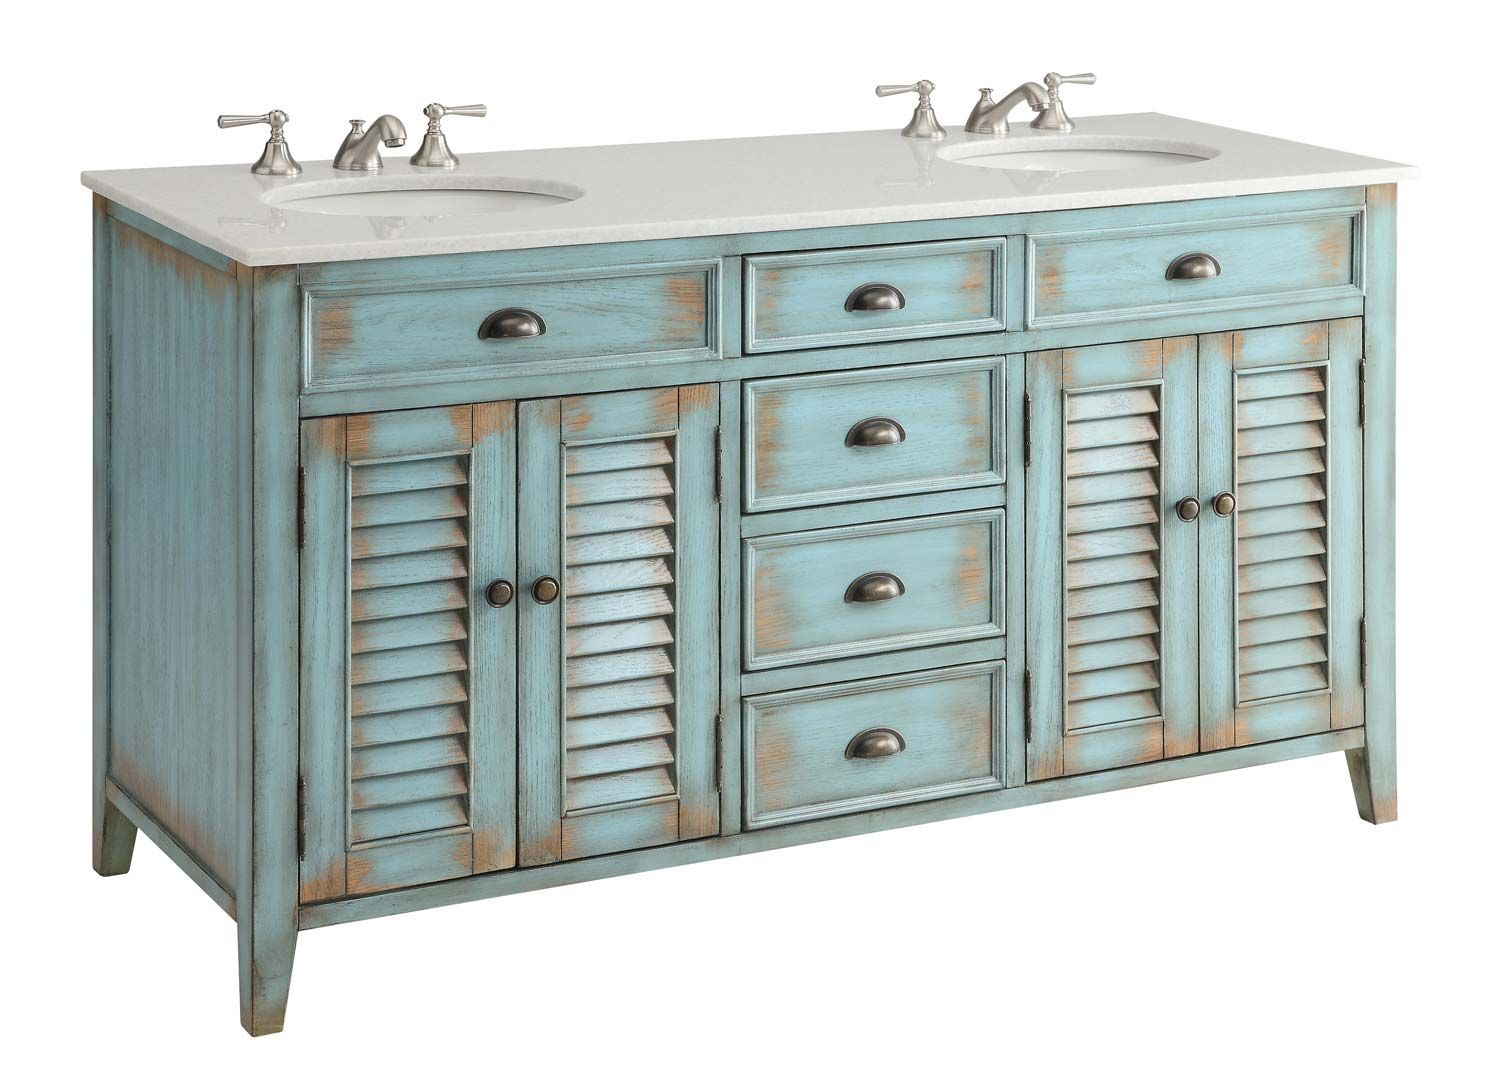 Adelina 60 Inch Antique Double Sink Bathroom Vanity, Marble Counter Top,  White Under Mount Porcelain Sinks, Large Storage Compartment, Back Panel  Pre Cut ...